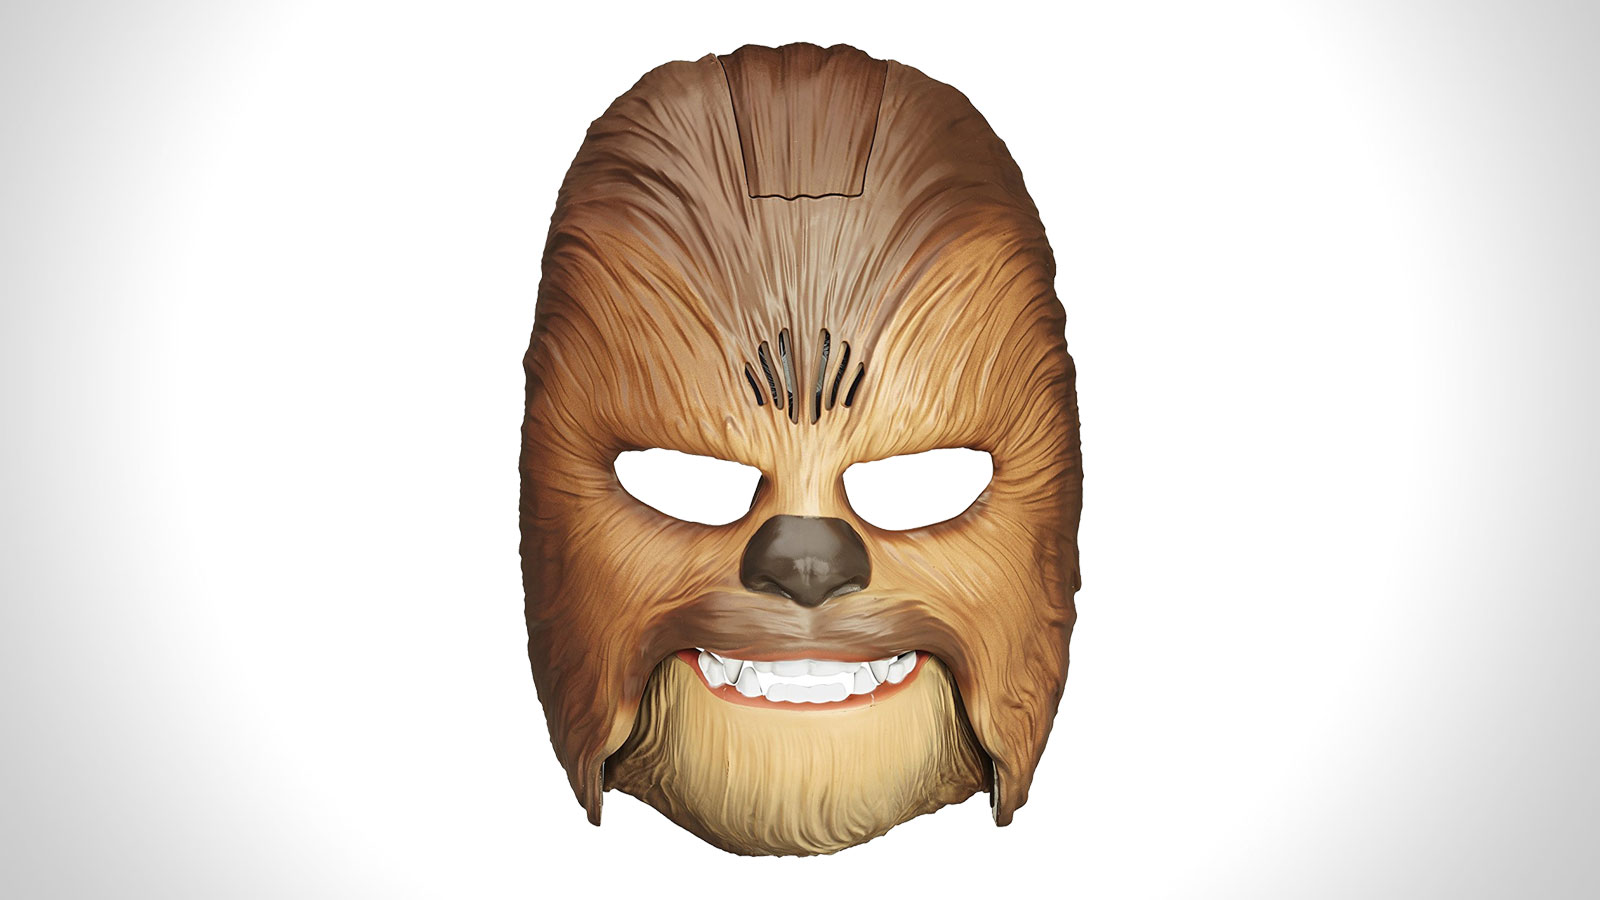 Star Wars The Force Awakens Chewbacca Electronic Mask | gifts for men | the best star wars gifts